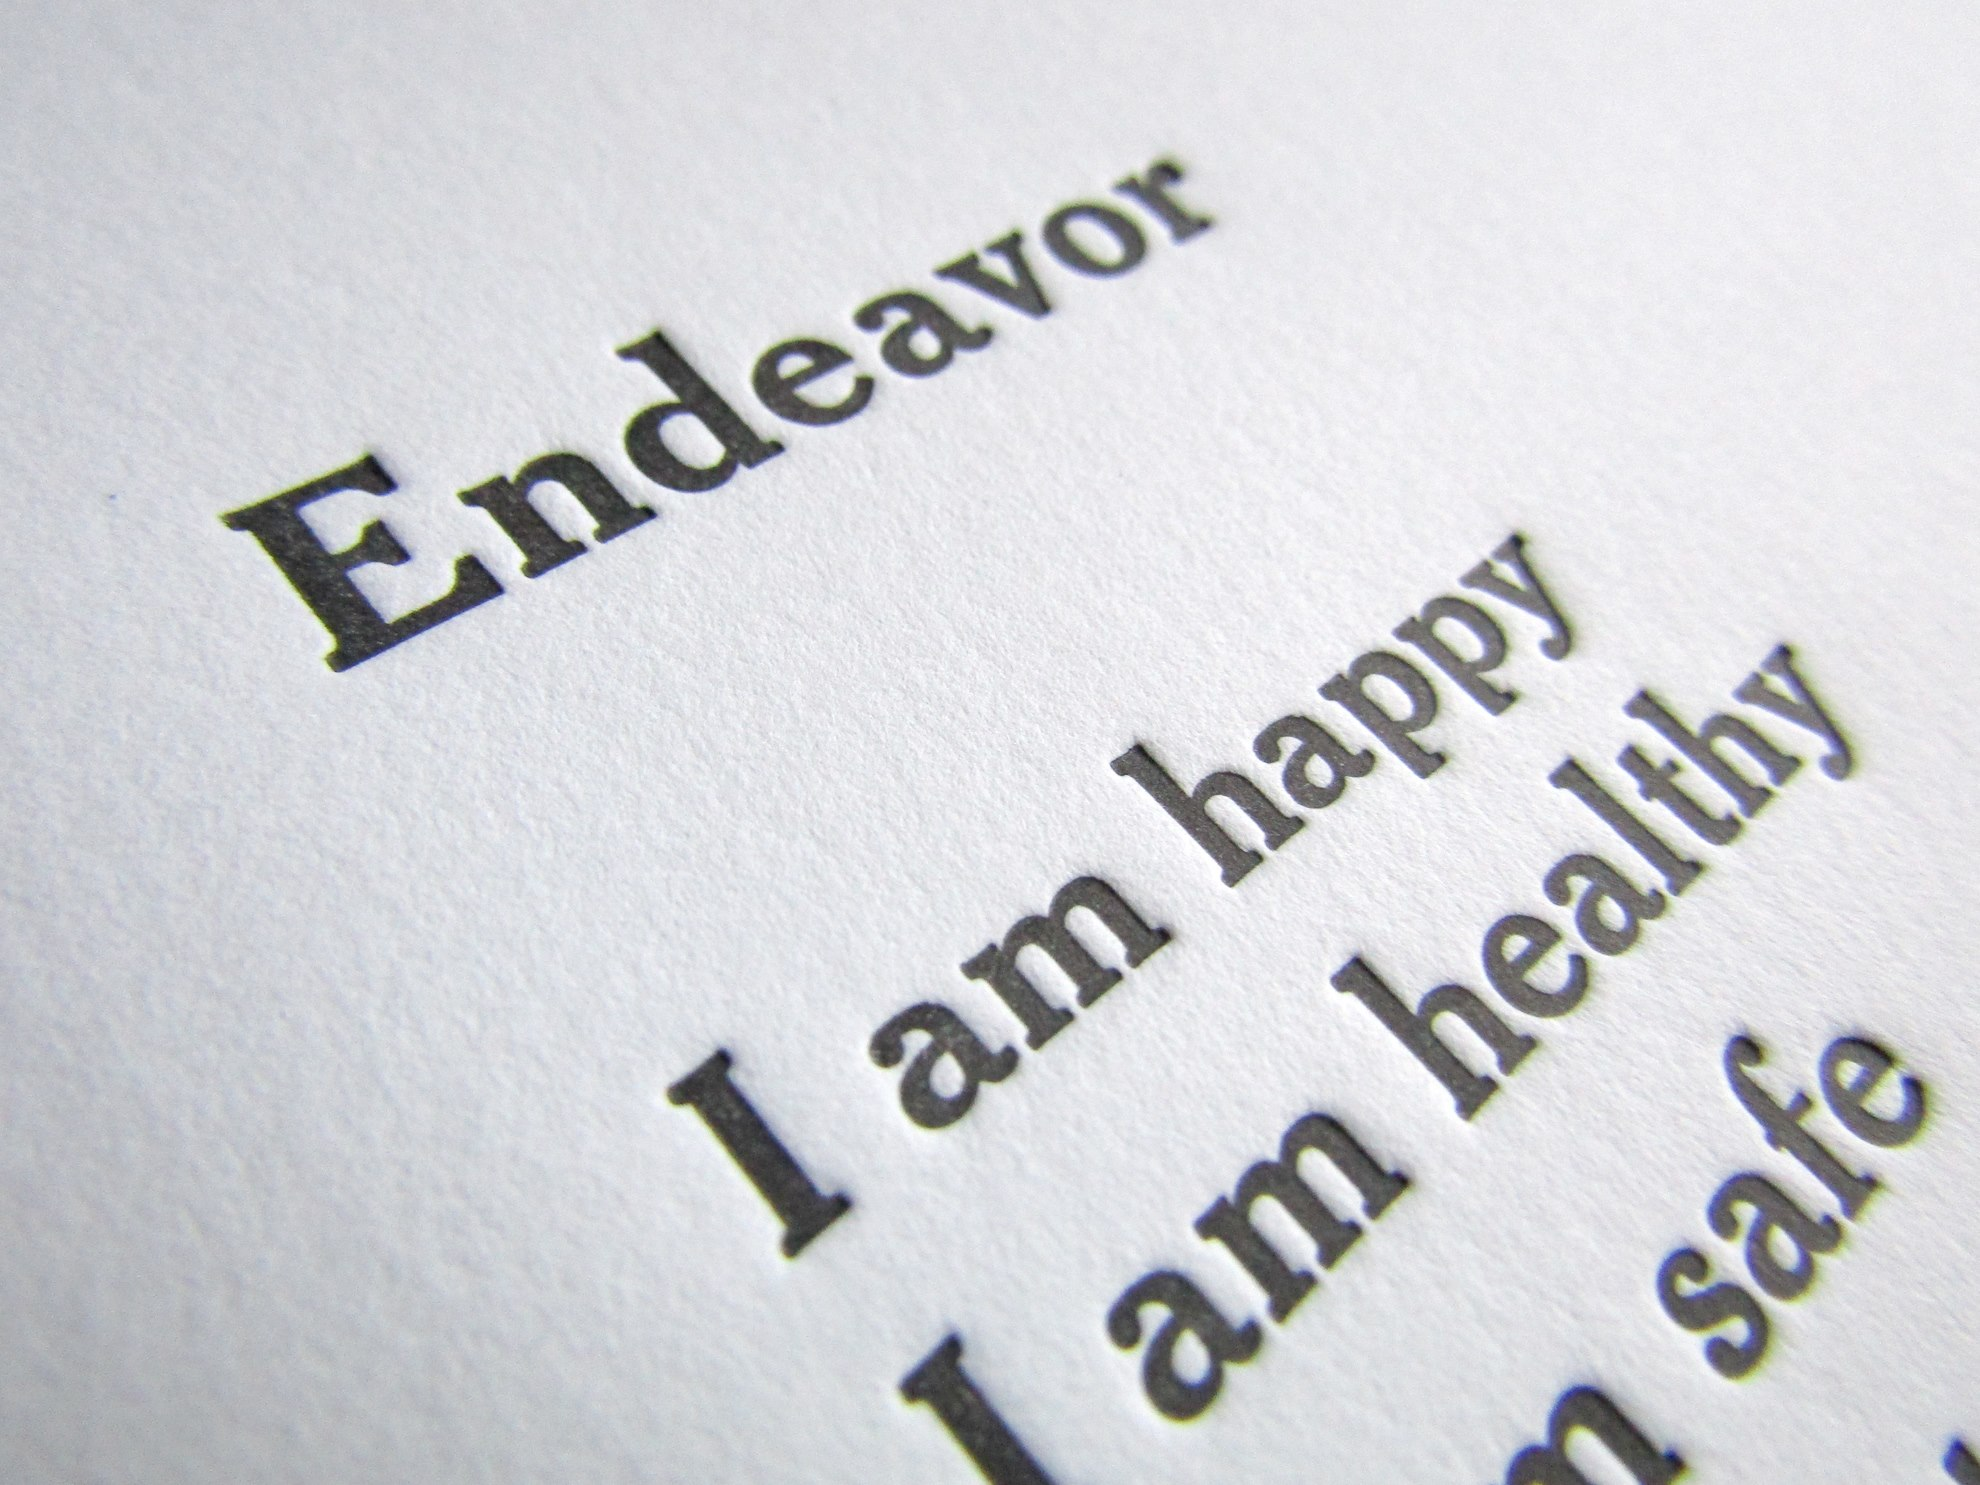 Endeavor Letterpress inviting letterpress boutique